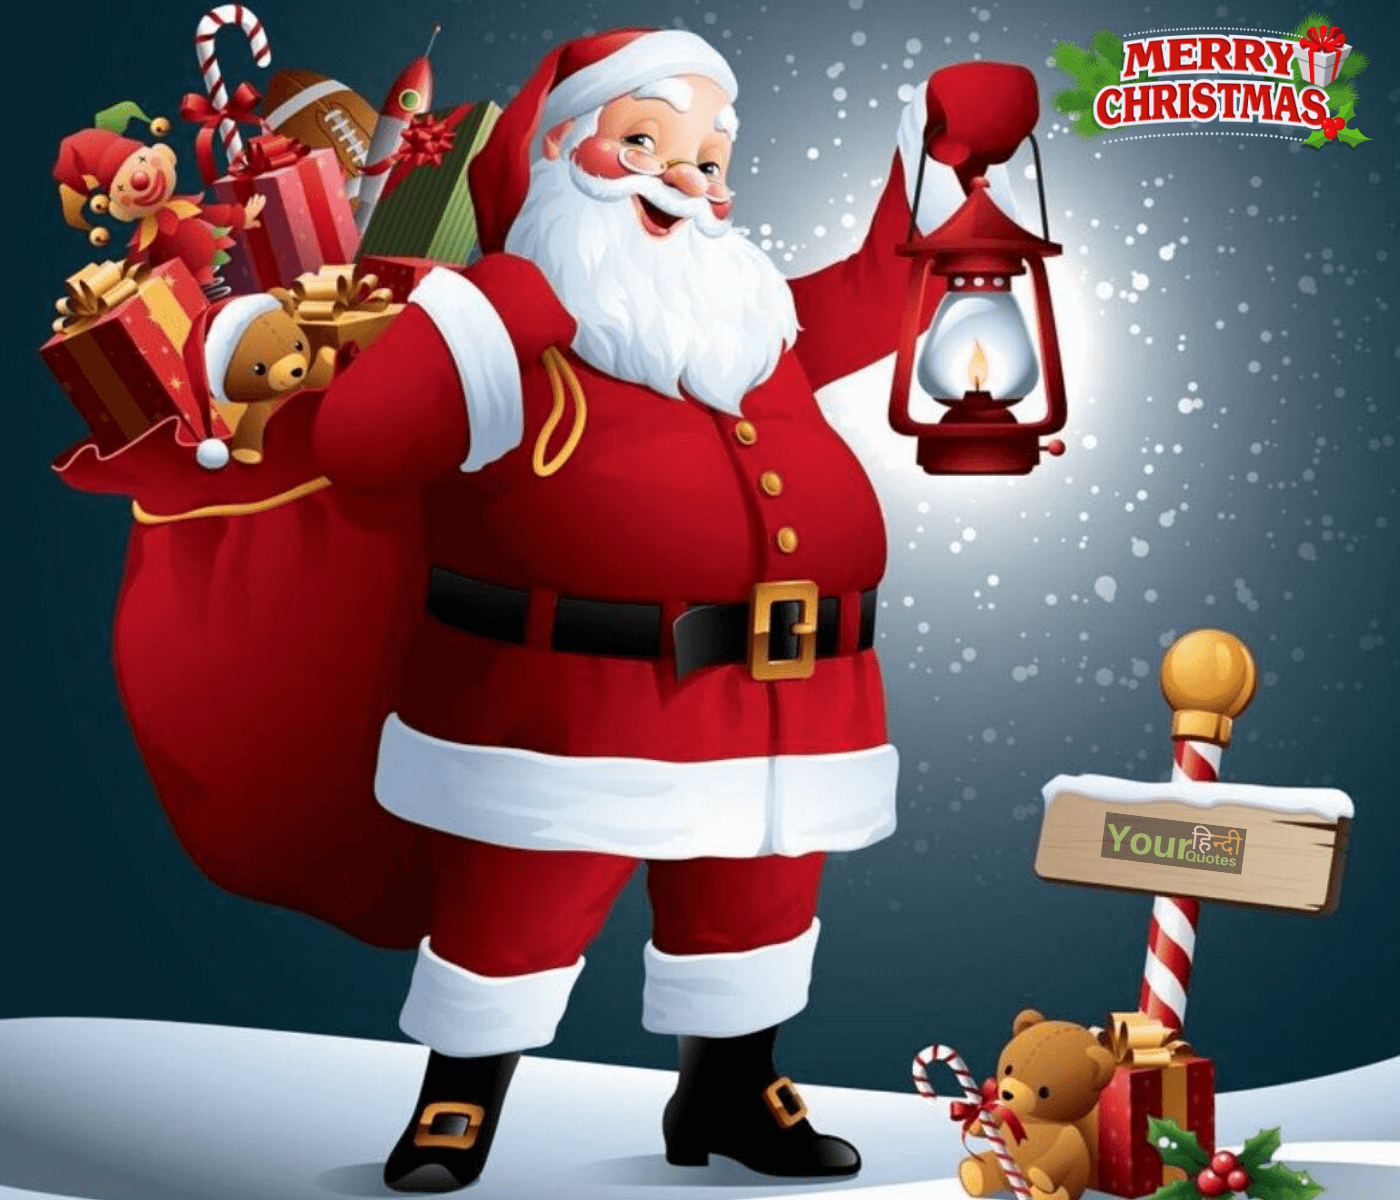 Merry Christmas Wishes in Hindi